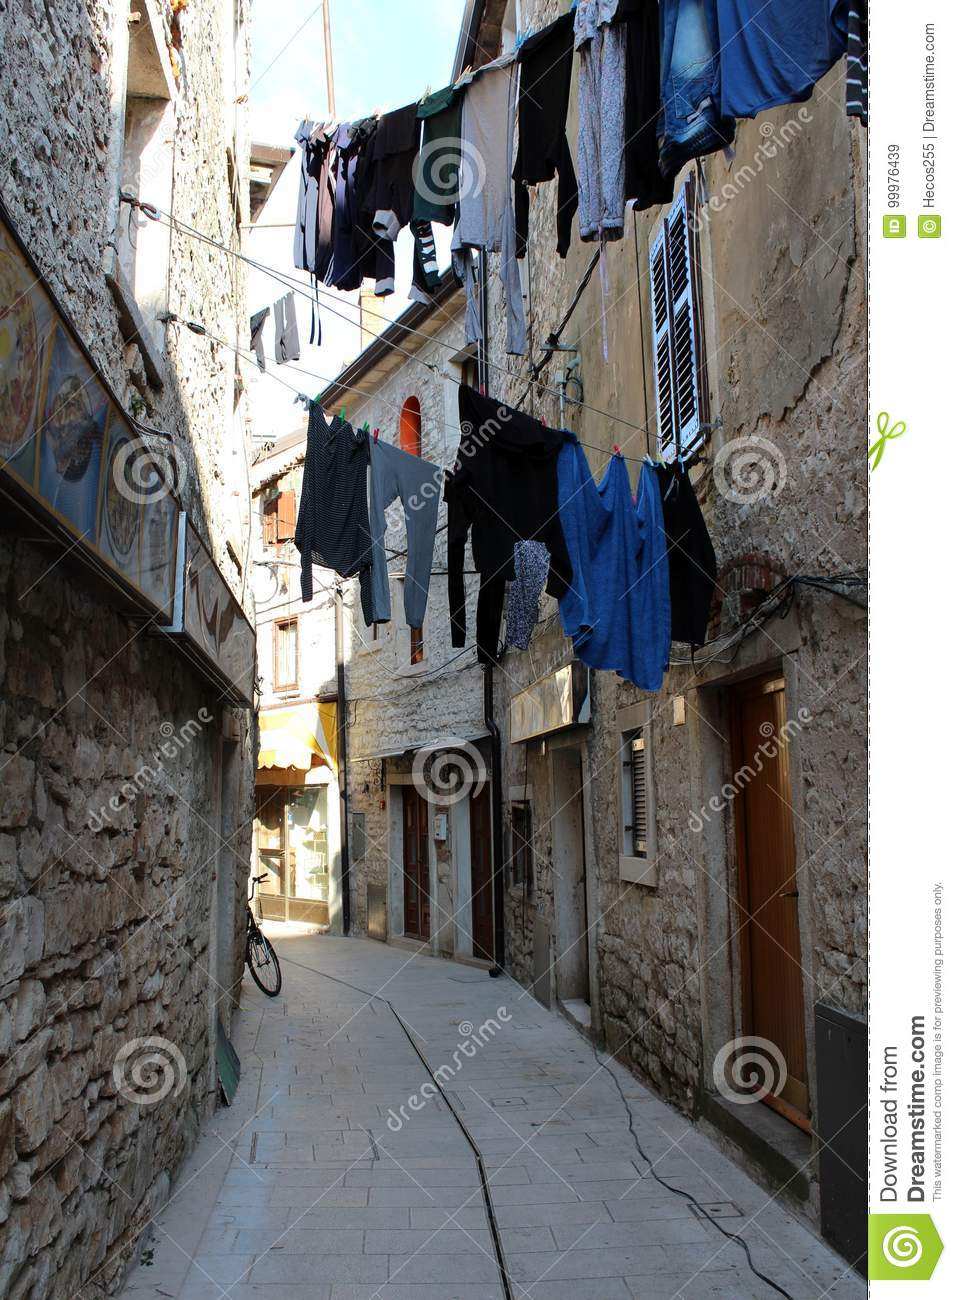 Clothes drying in Mediterranean street